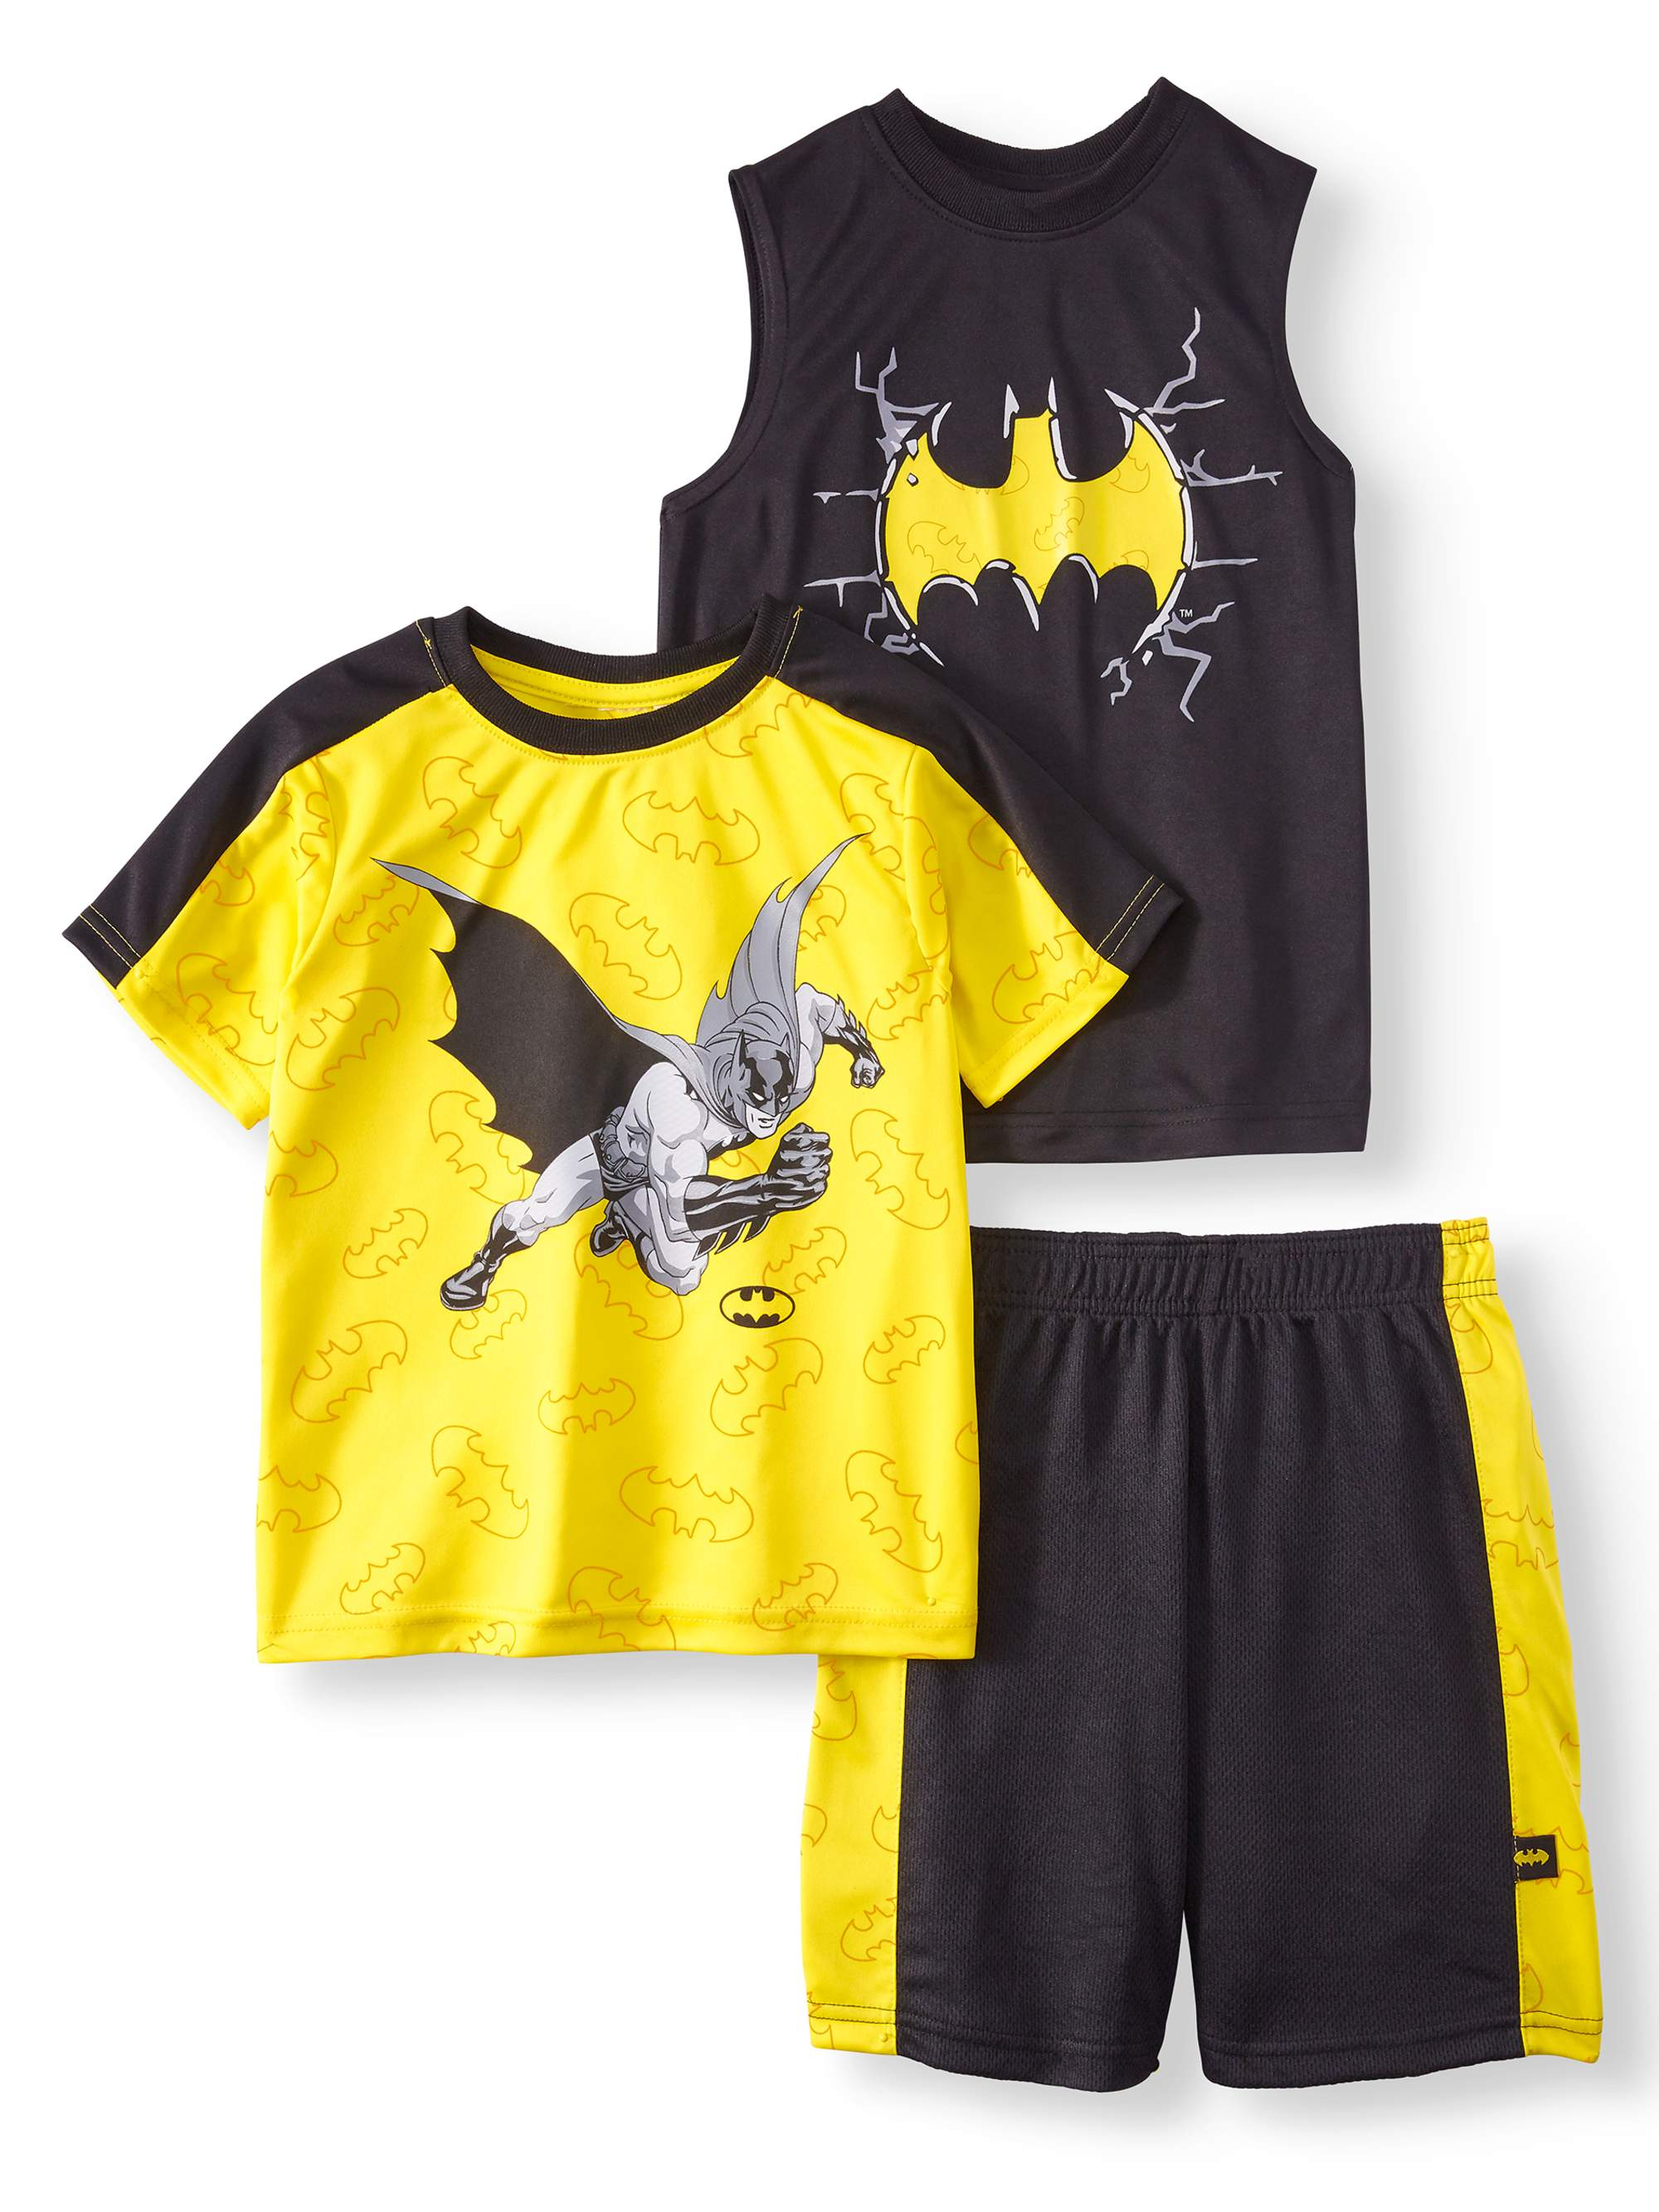 Performance Tee, Muscle Tank, and Shorts, 3-Piece Outfit Set (Little Boys)